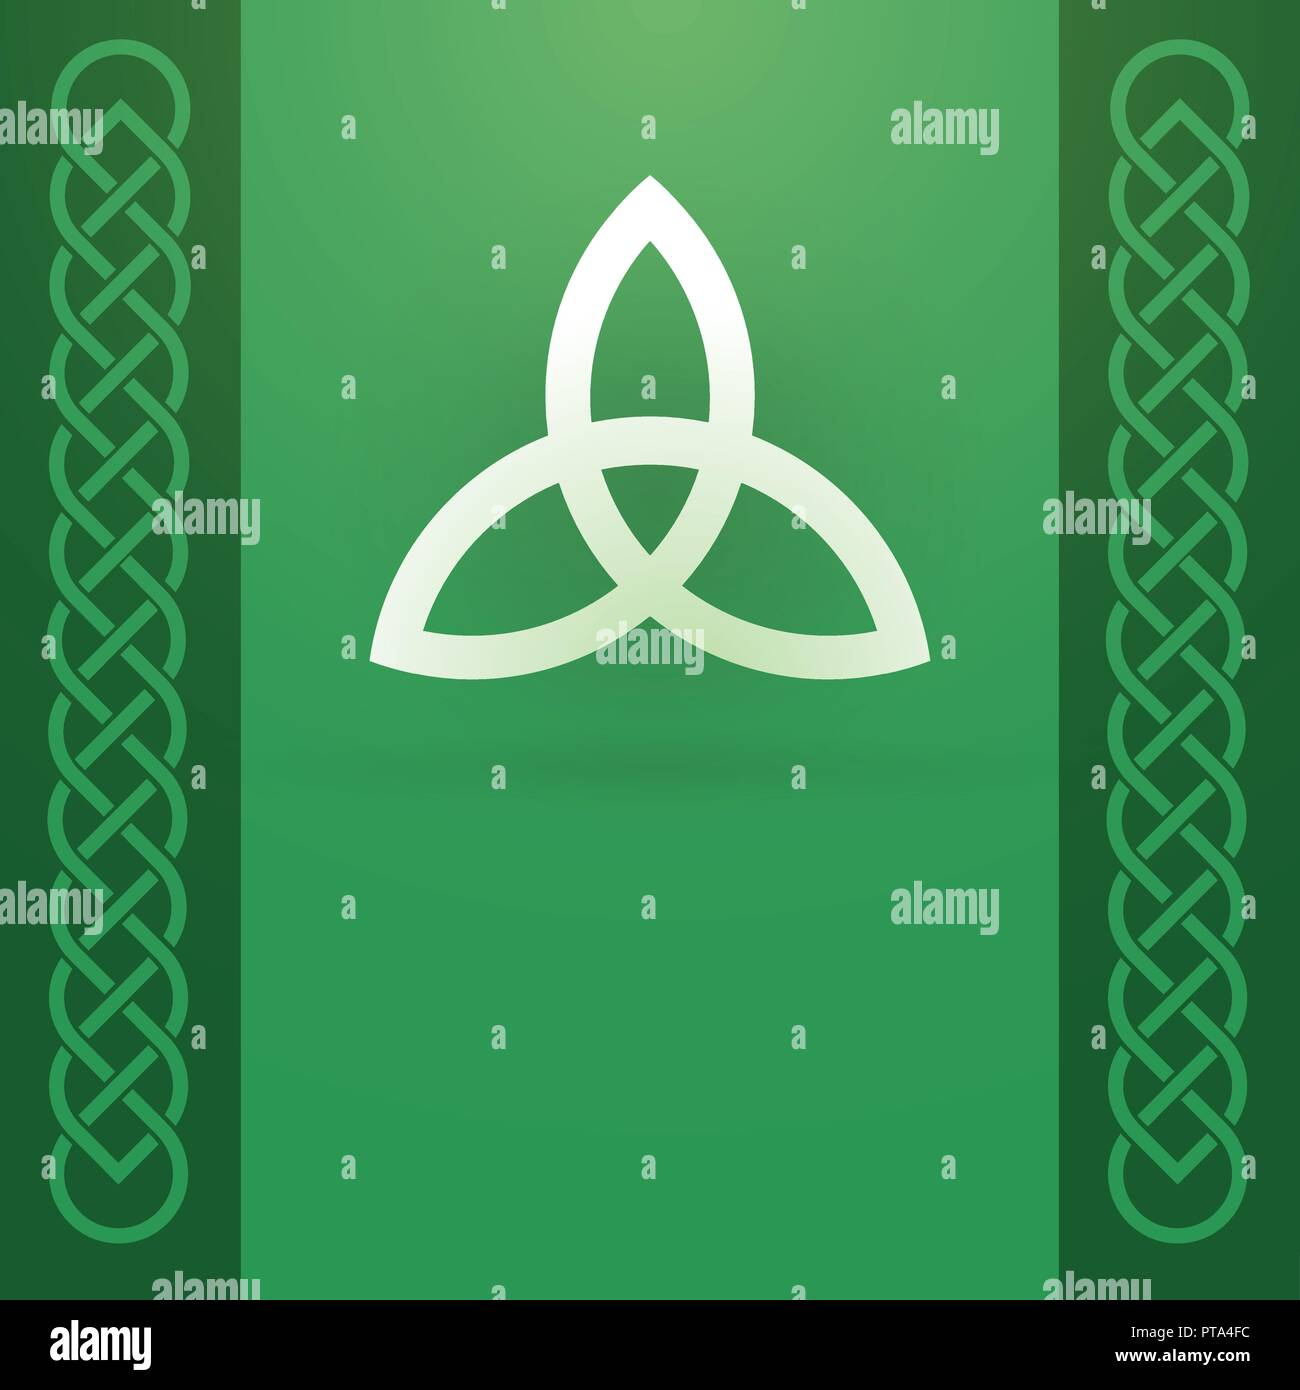 Celtic Knot Ornament and Triquetra Symbol with copy space on green background, Vector Illustration of Ancient Pagan Culture. - Stock Vector